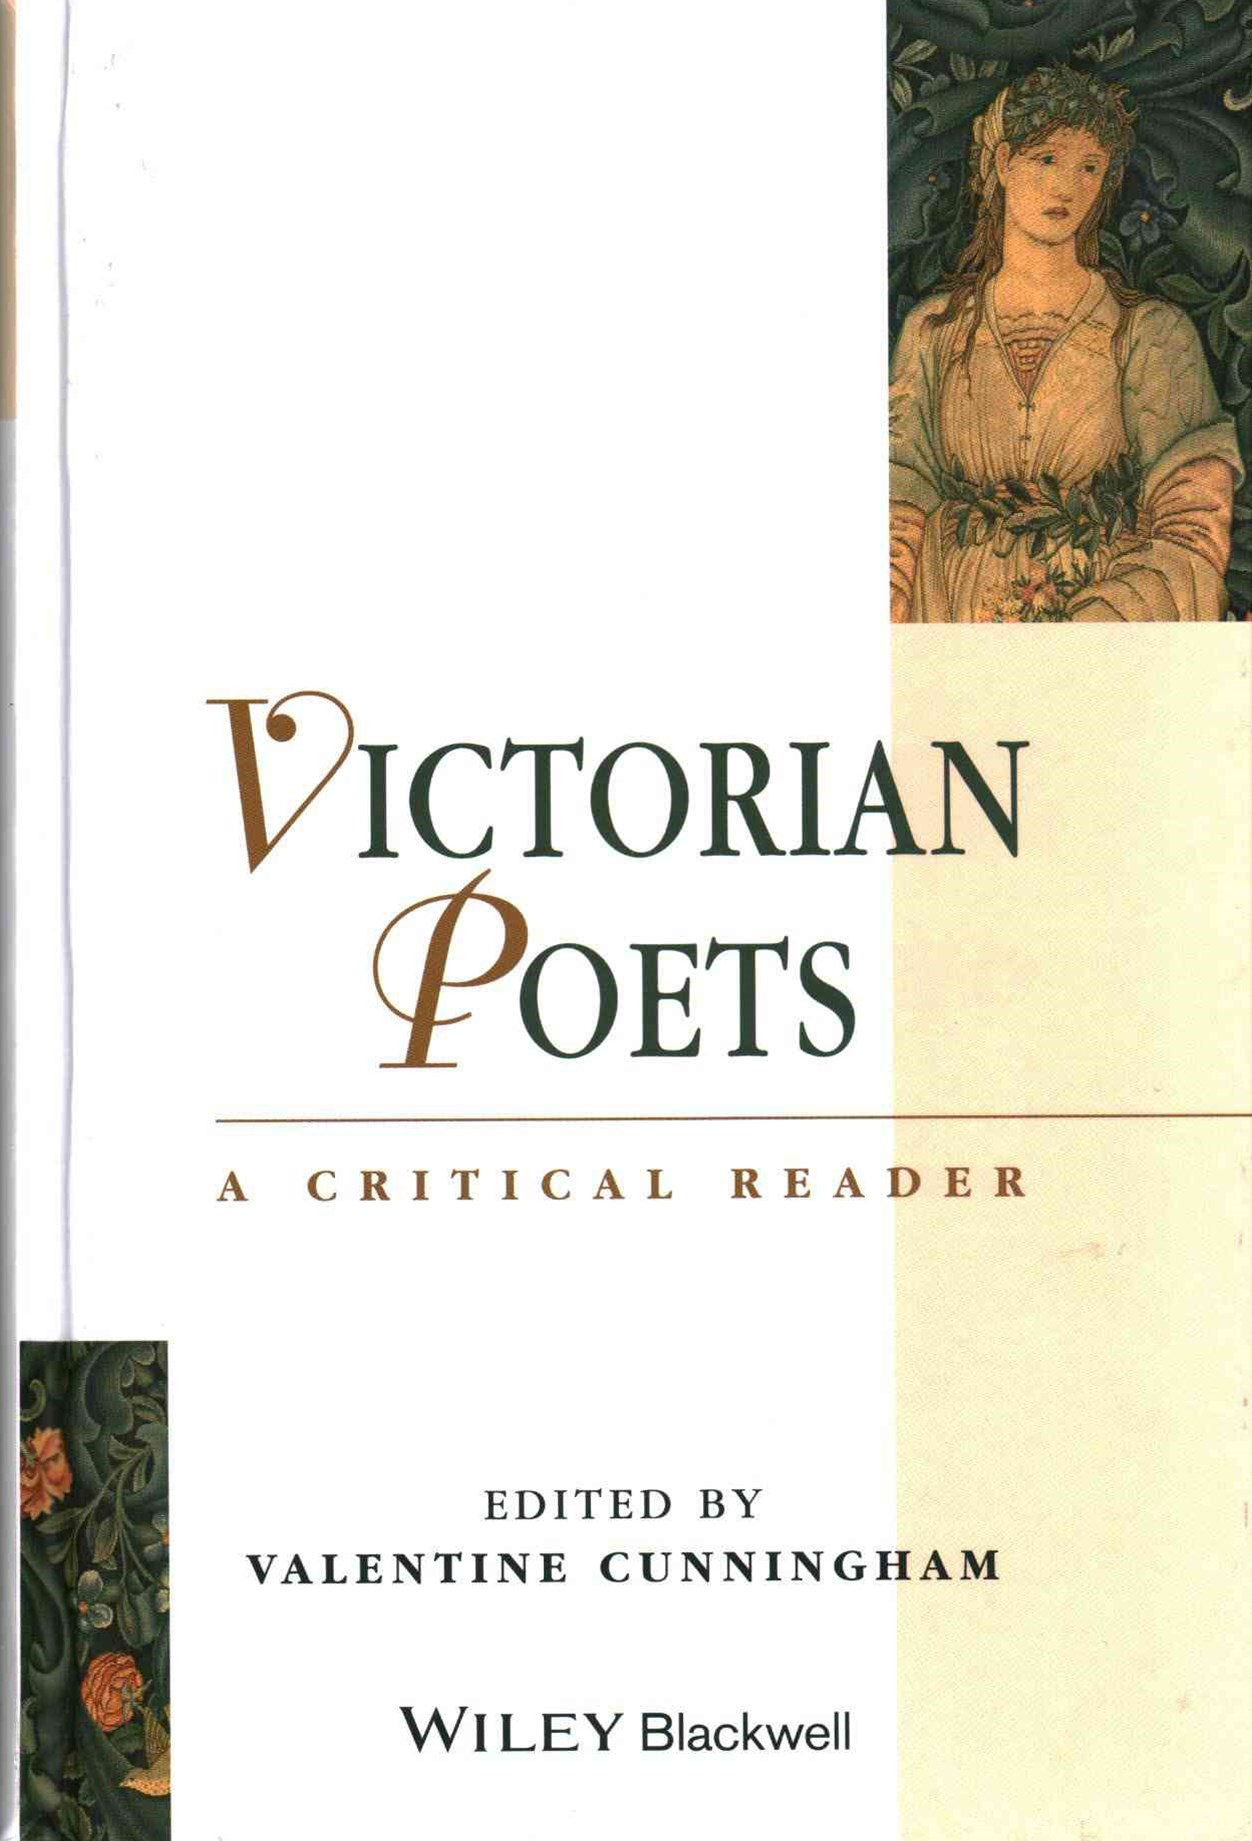 Victorian Poets - a Critical Reader